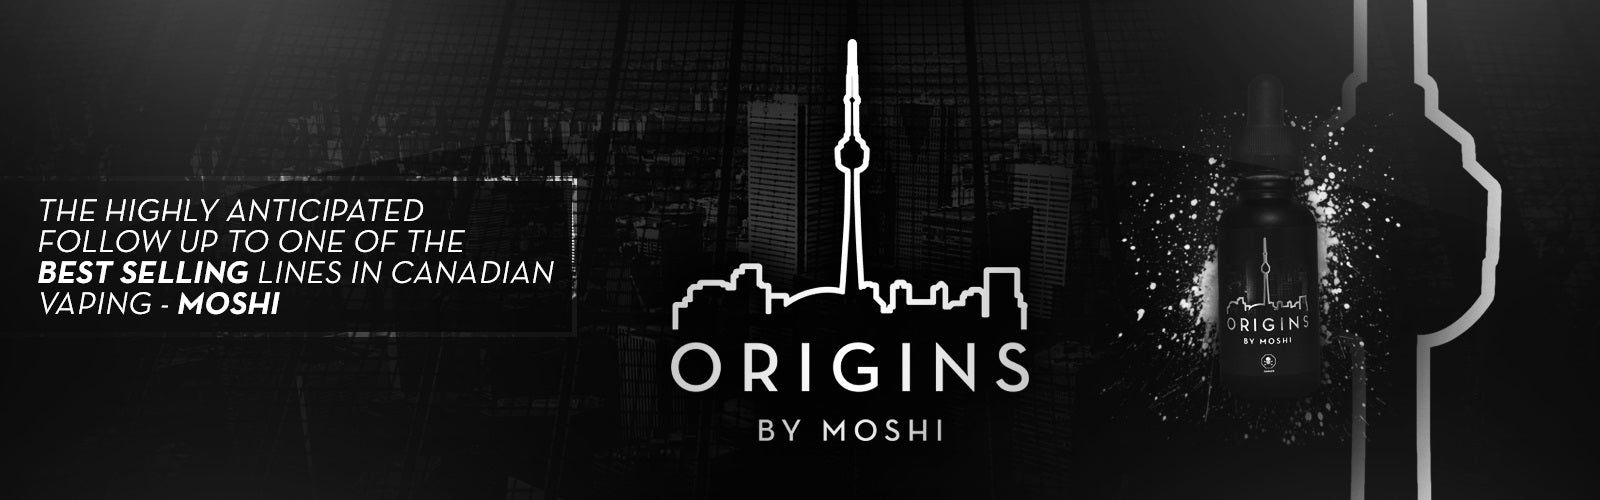 Origins By Moshi Premium E-liquid